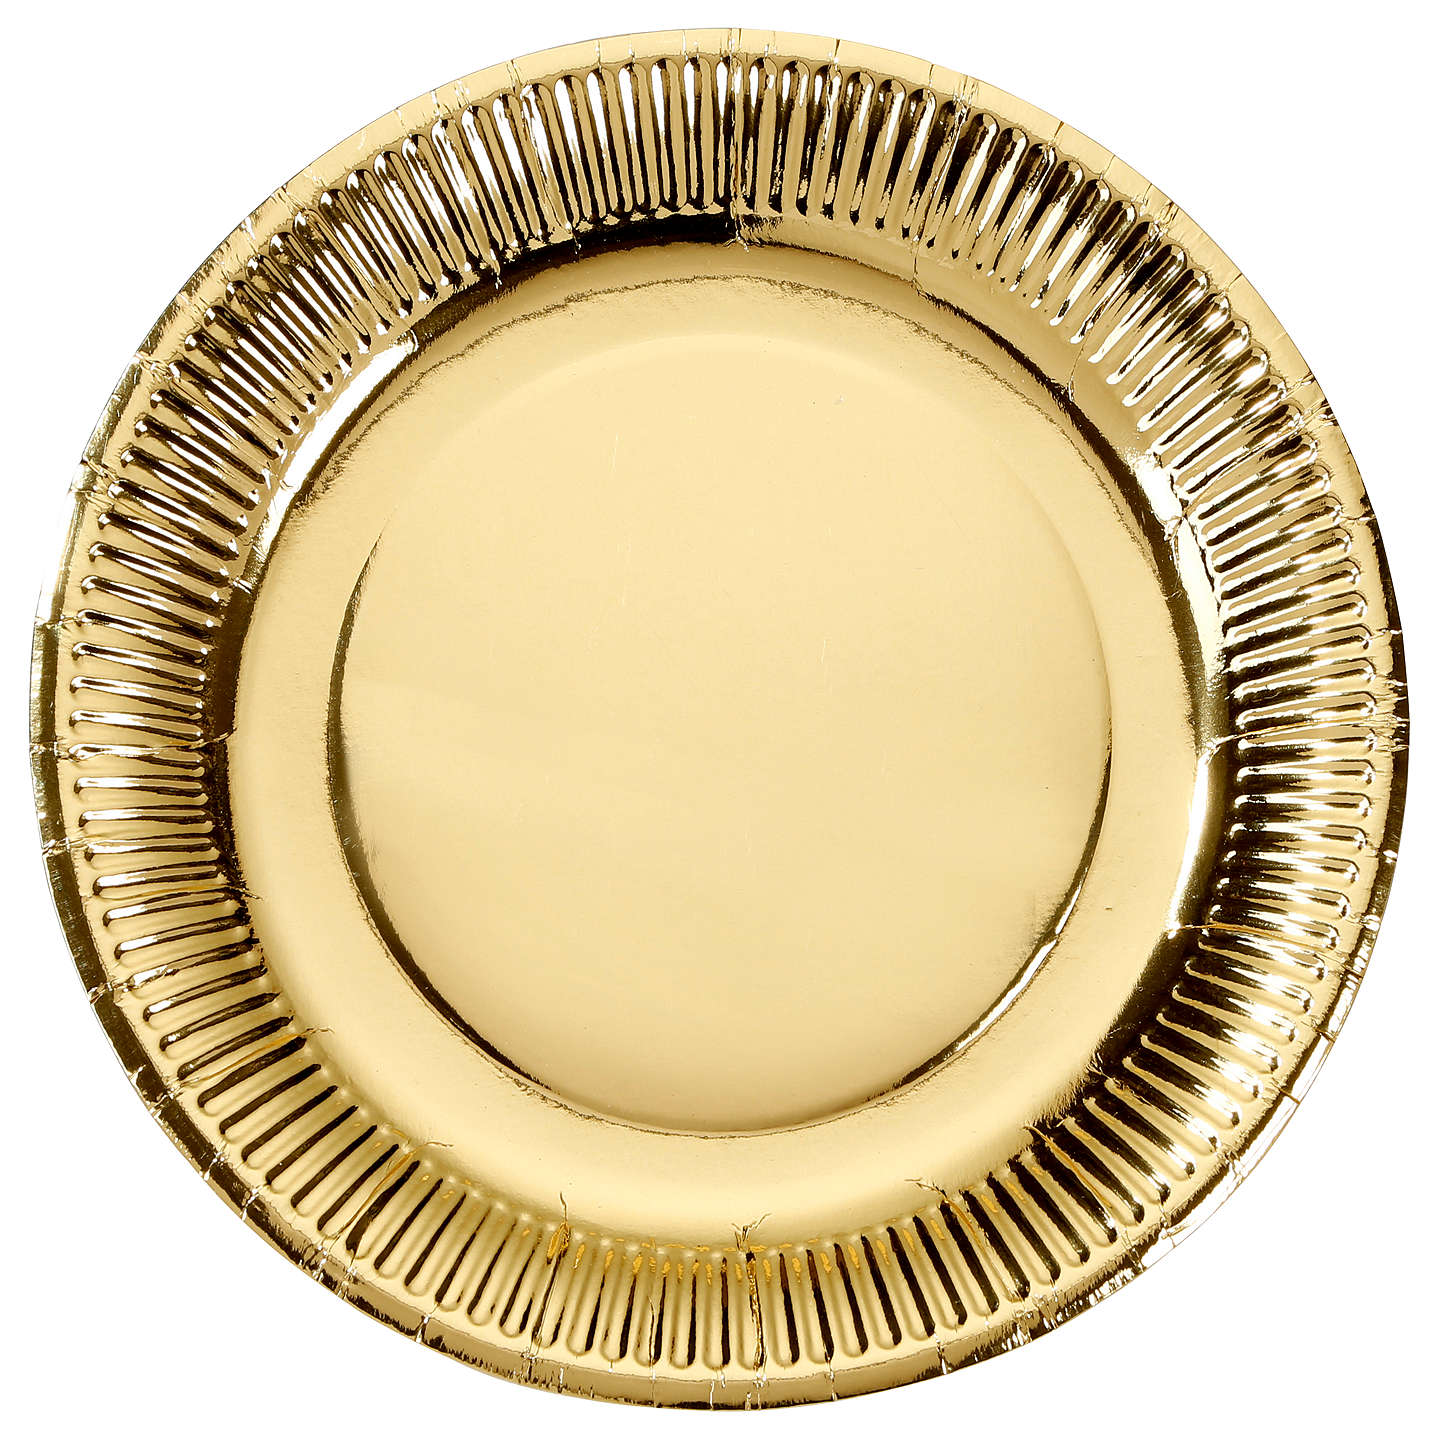 BuyTalking Tables Paper Plates Solid Gold Online at johnlewis.com  sc 1 st  John Lewis : solid paper plates - pezcame.com